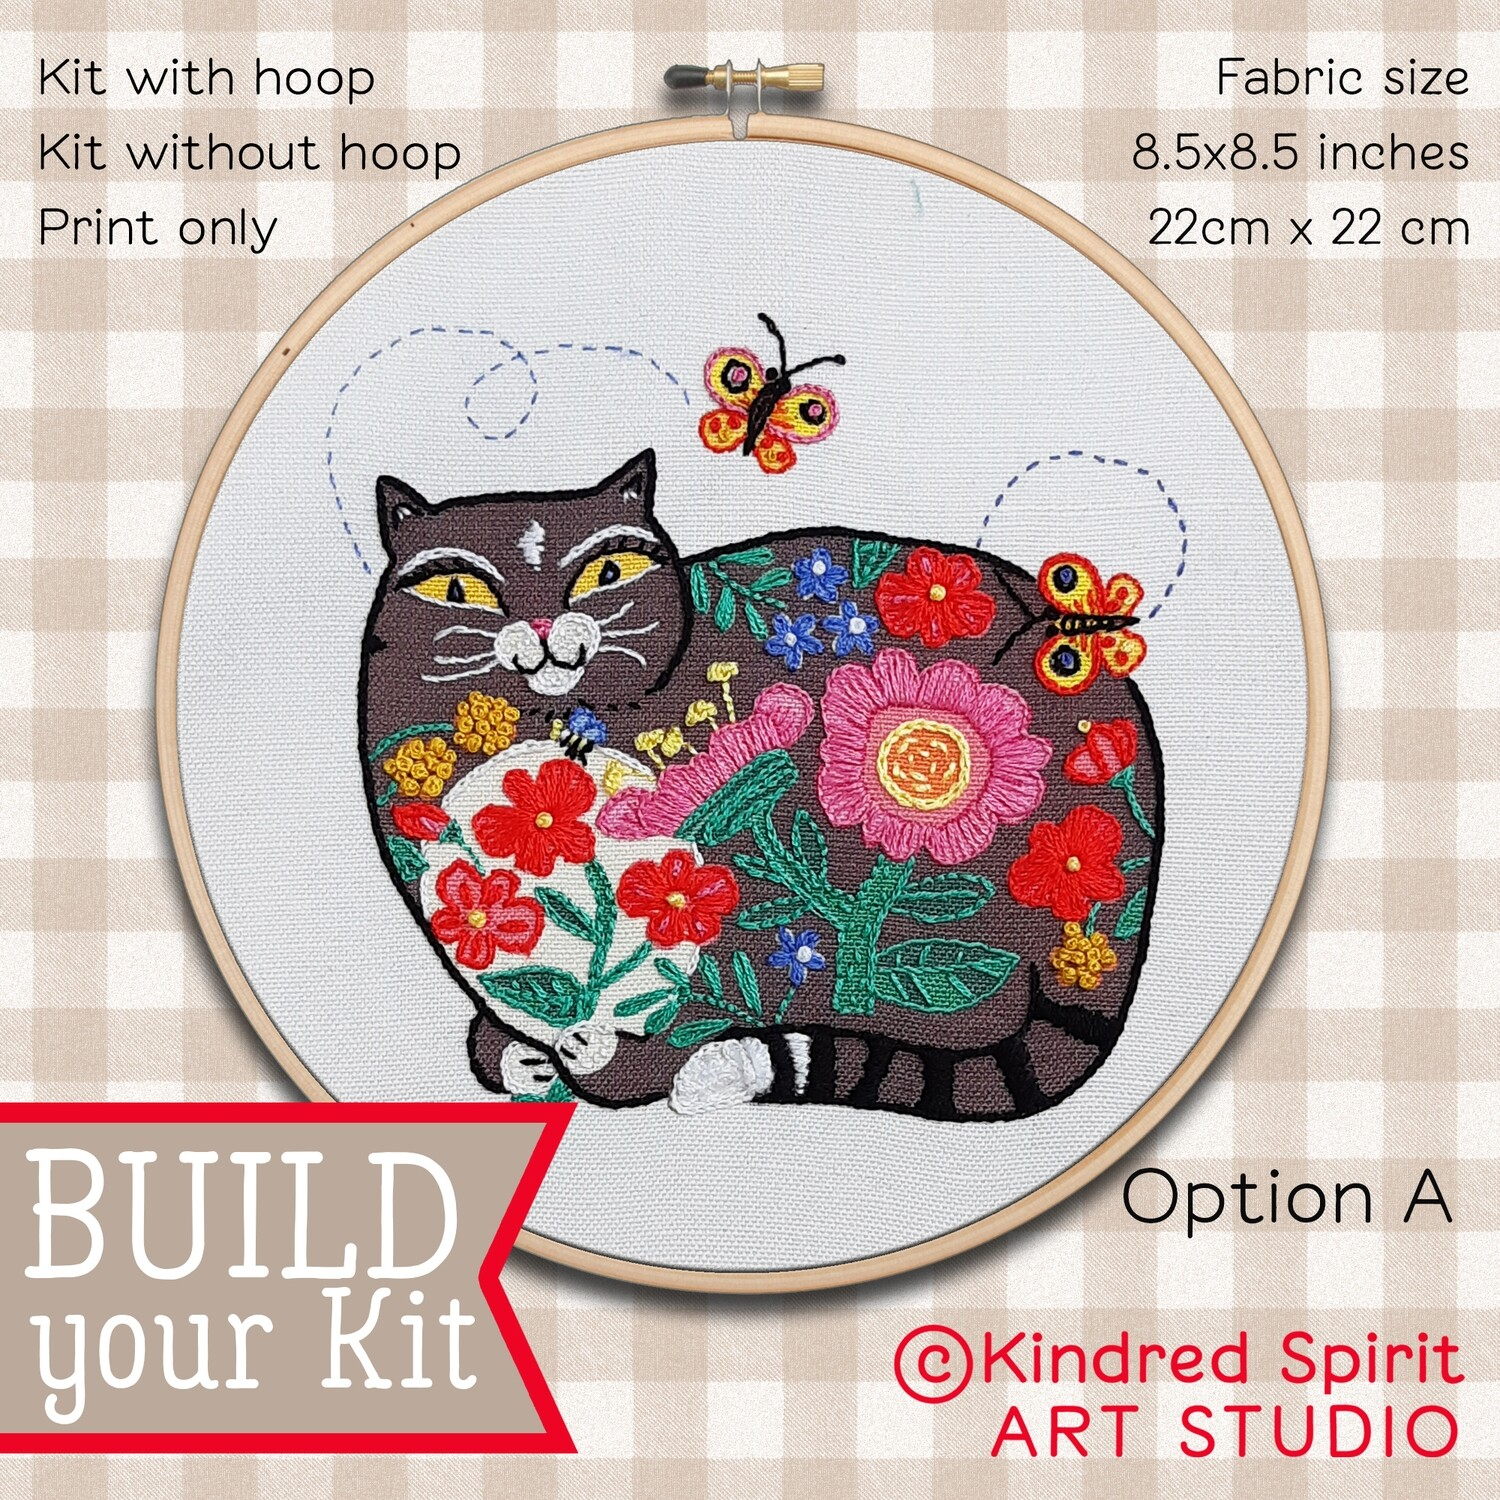 Black Cat Hand Embroidery Kit  - Build your kit option - with hoop, without hoop or fabric print only